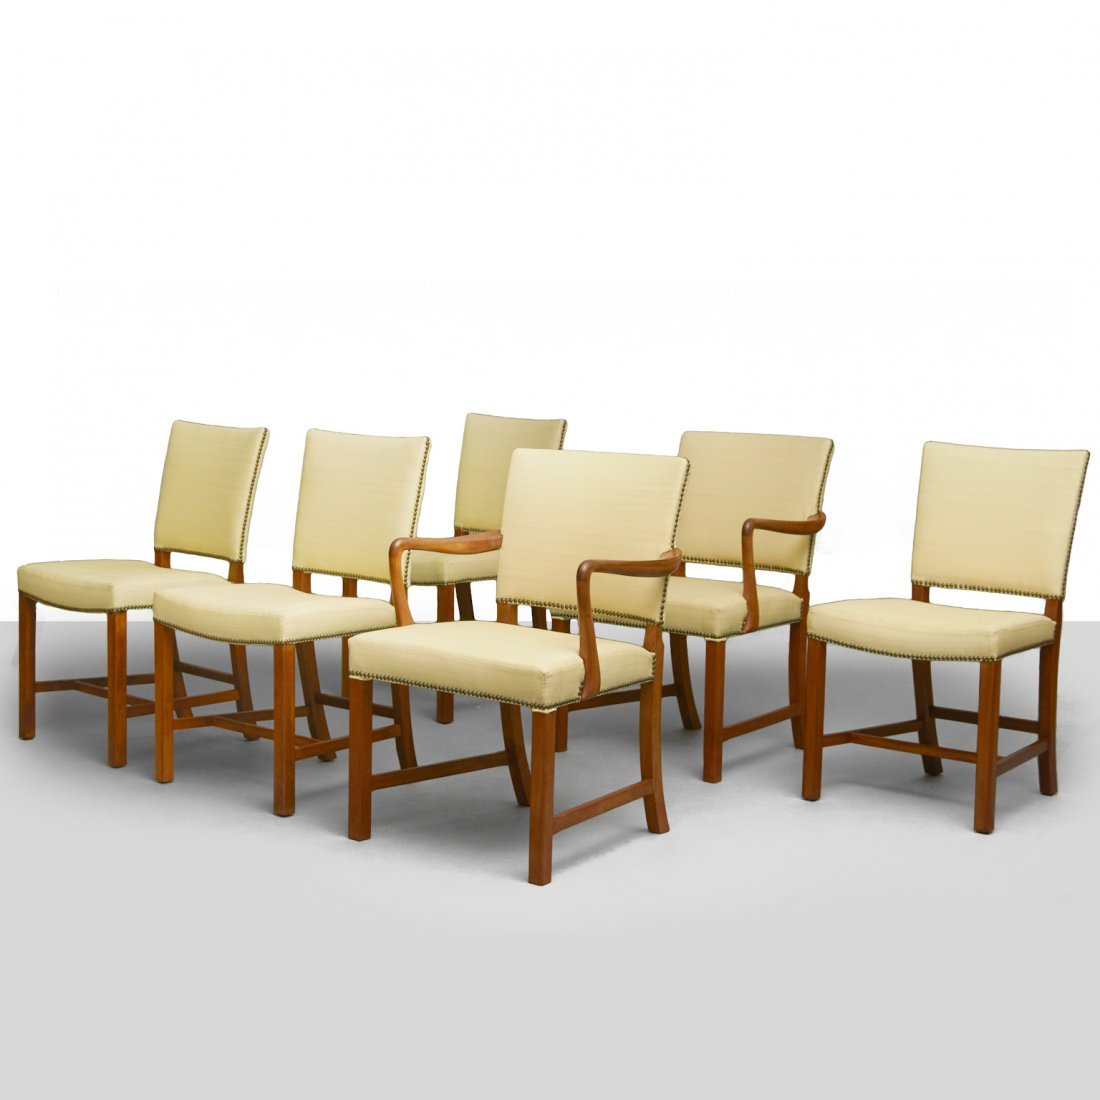 Ole Wanscher, Set of Six Dining Chairs